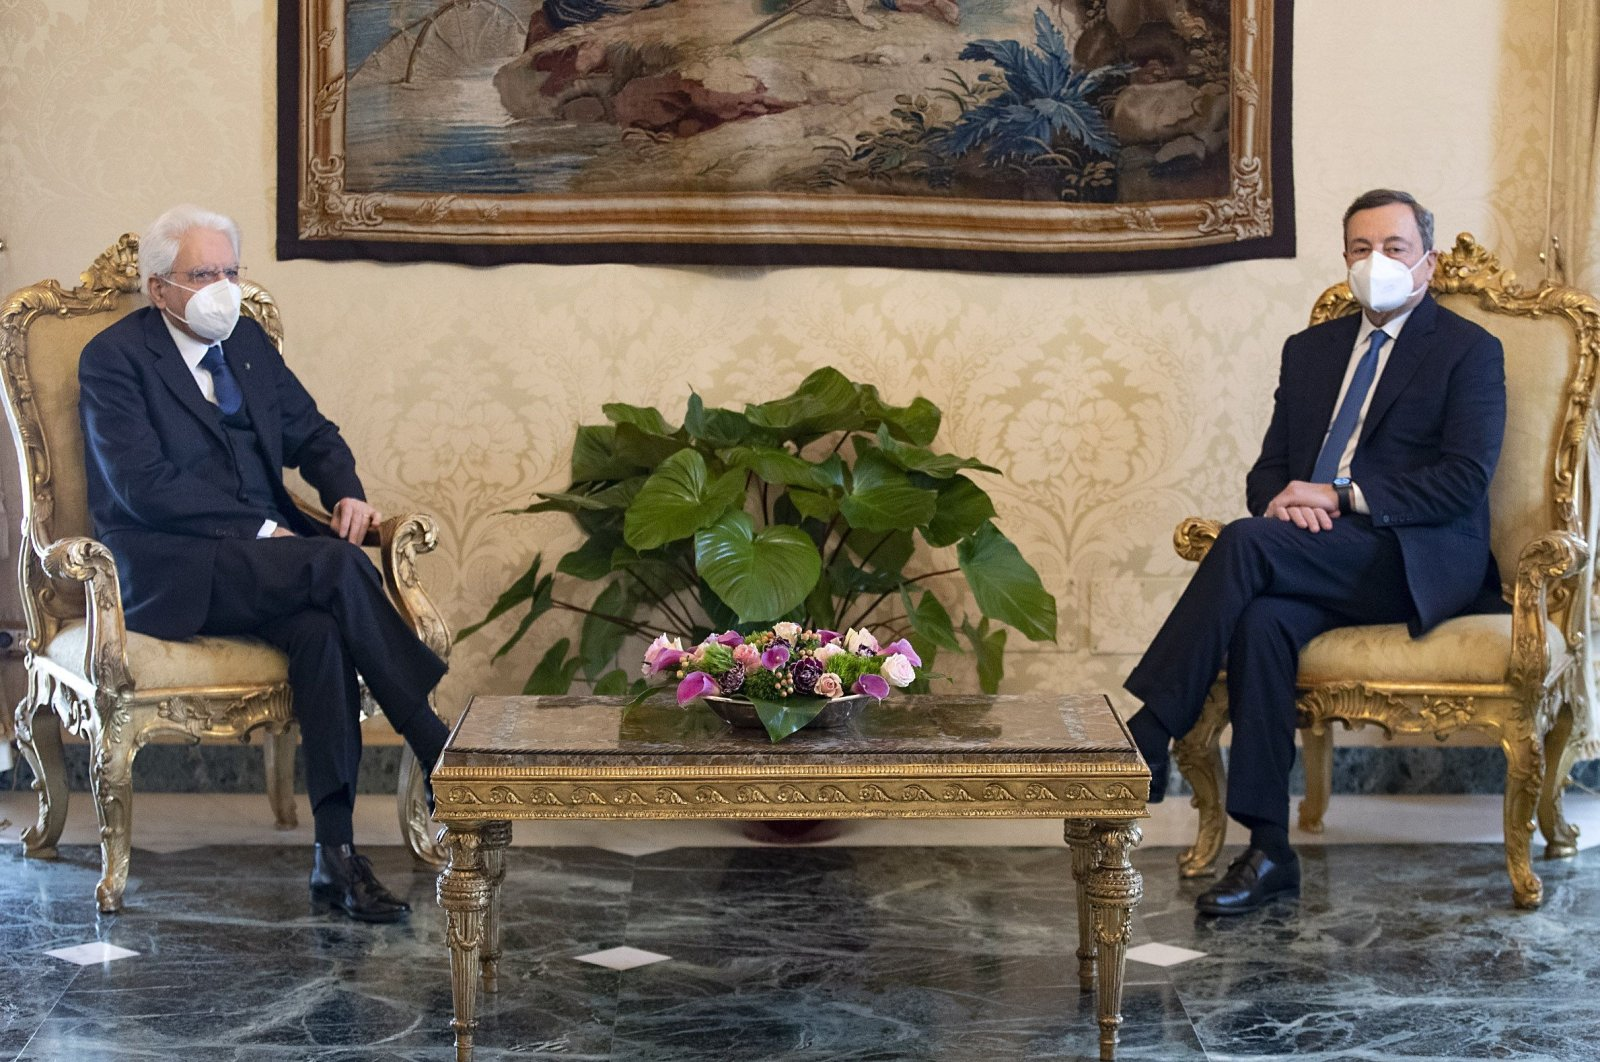 This handout picture taken and released by the Quirinal press office shows former Italian head of the European Central Bank Mario Draghi (R) and Italian President Sergio Mattarella in a meeting, at the Quirinal Palace, in Rome, Italy, Feb. 3, 2021. (AFP Photo)